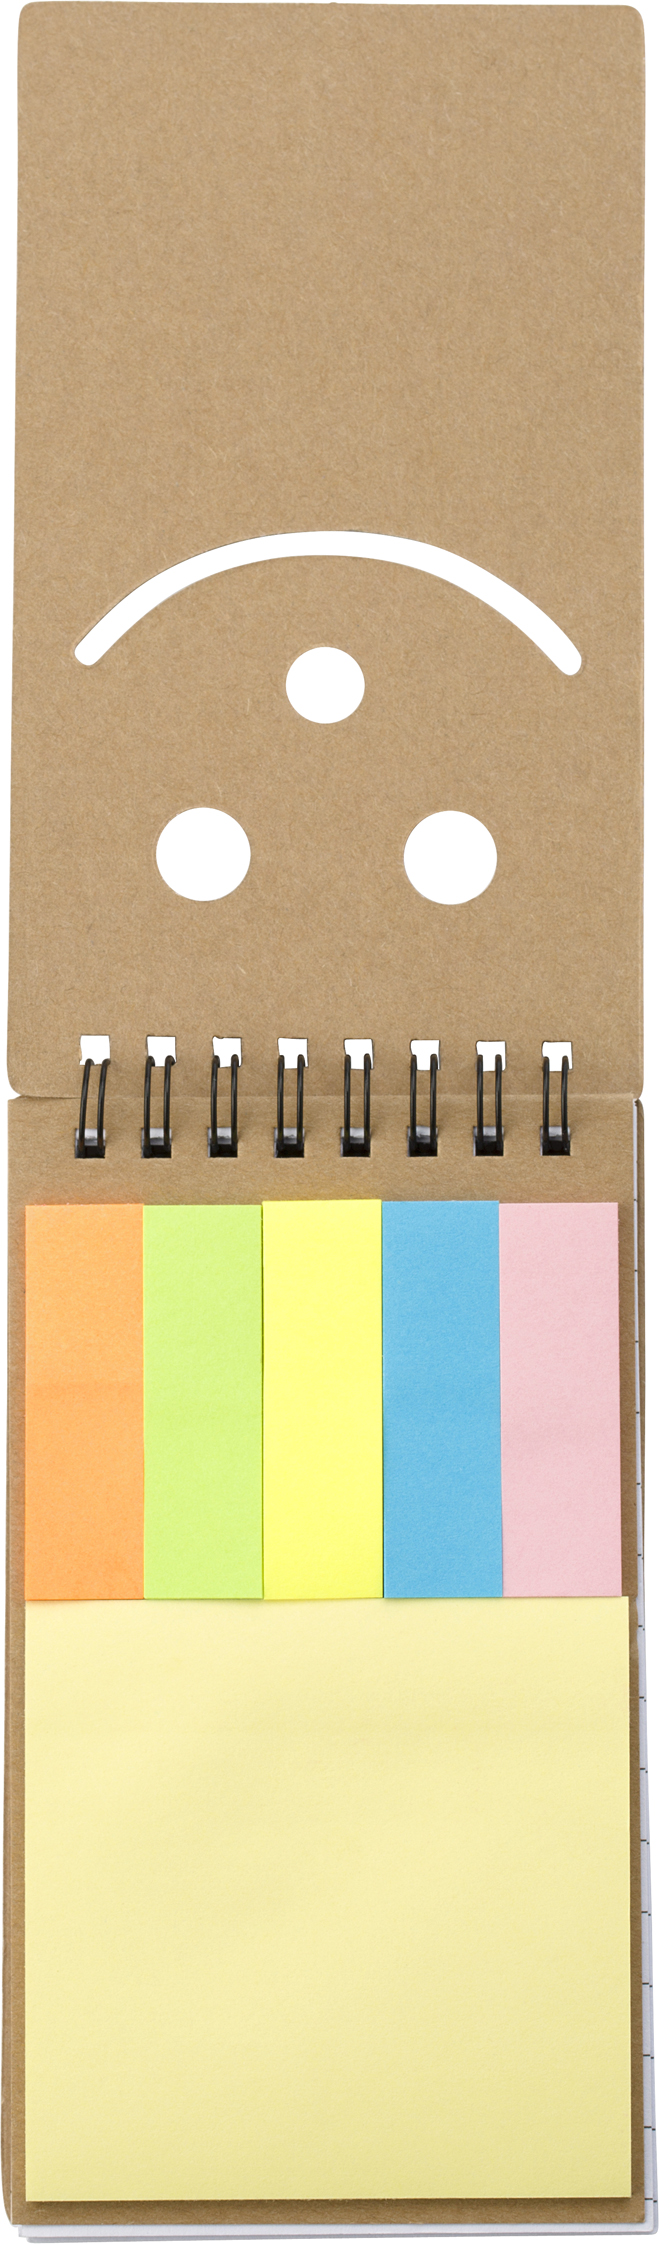 Branded Notebook with sticky notes.